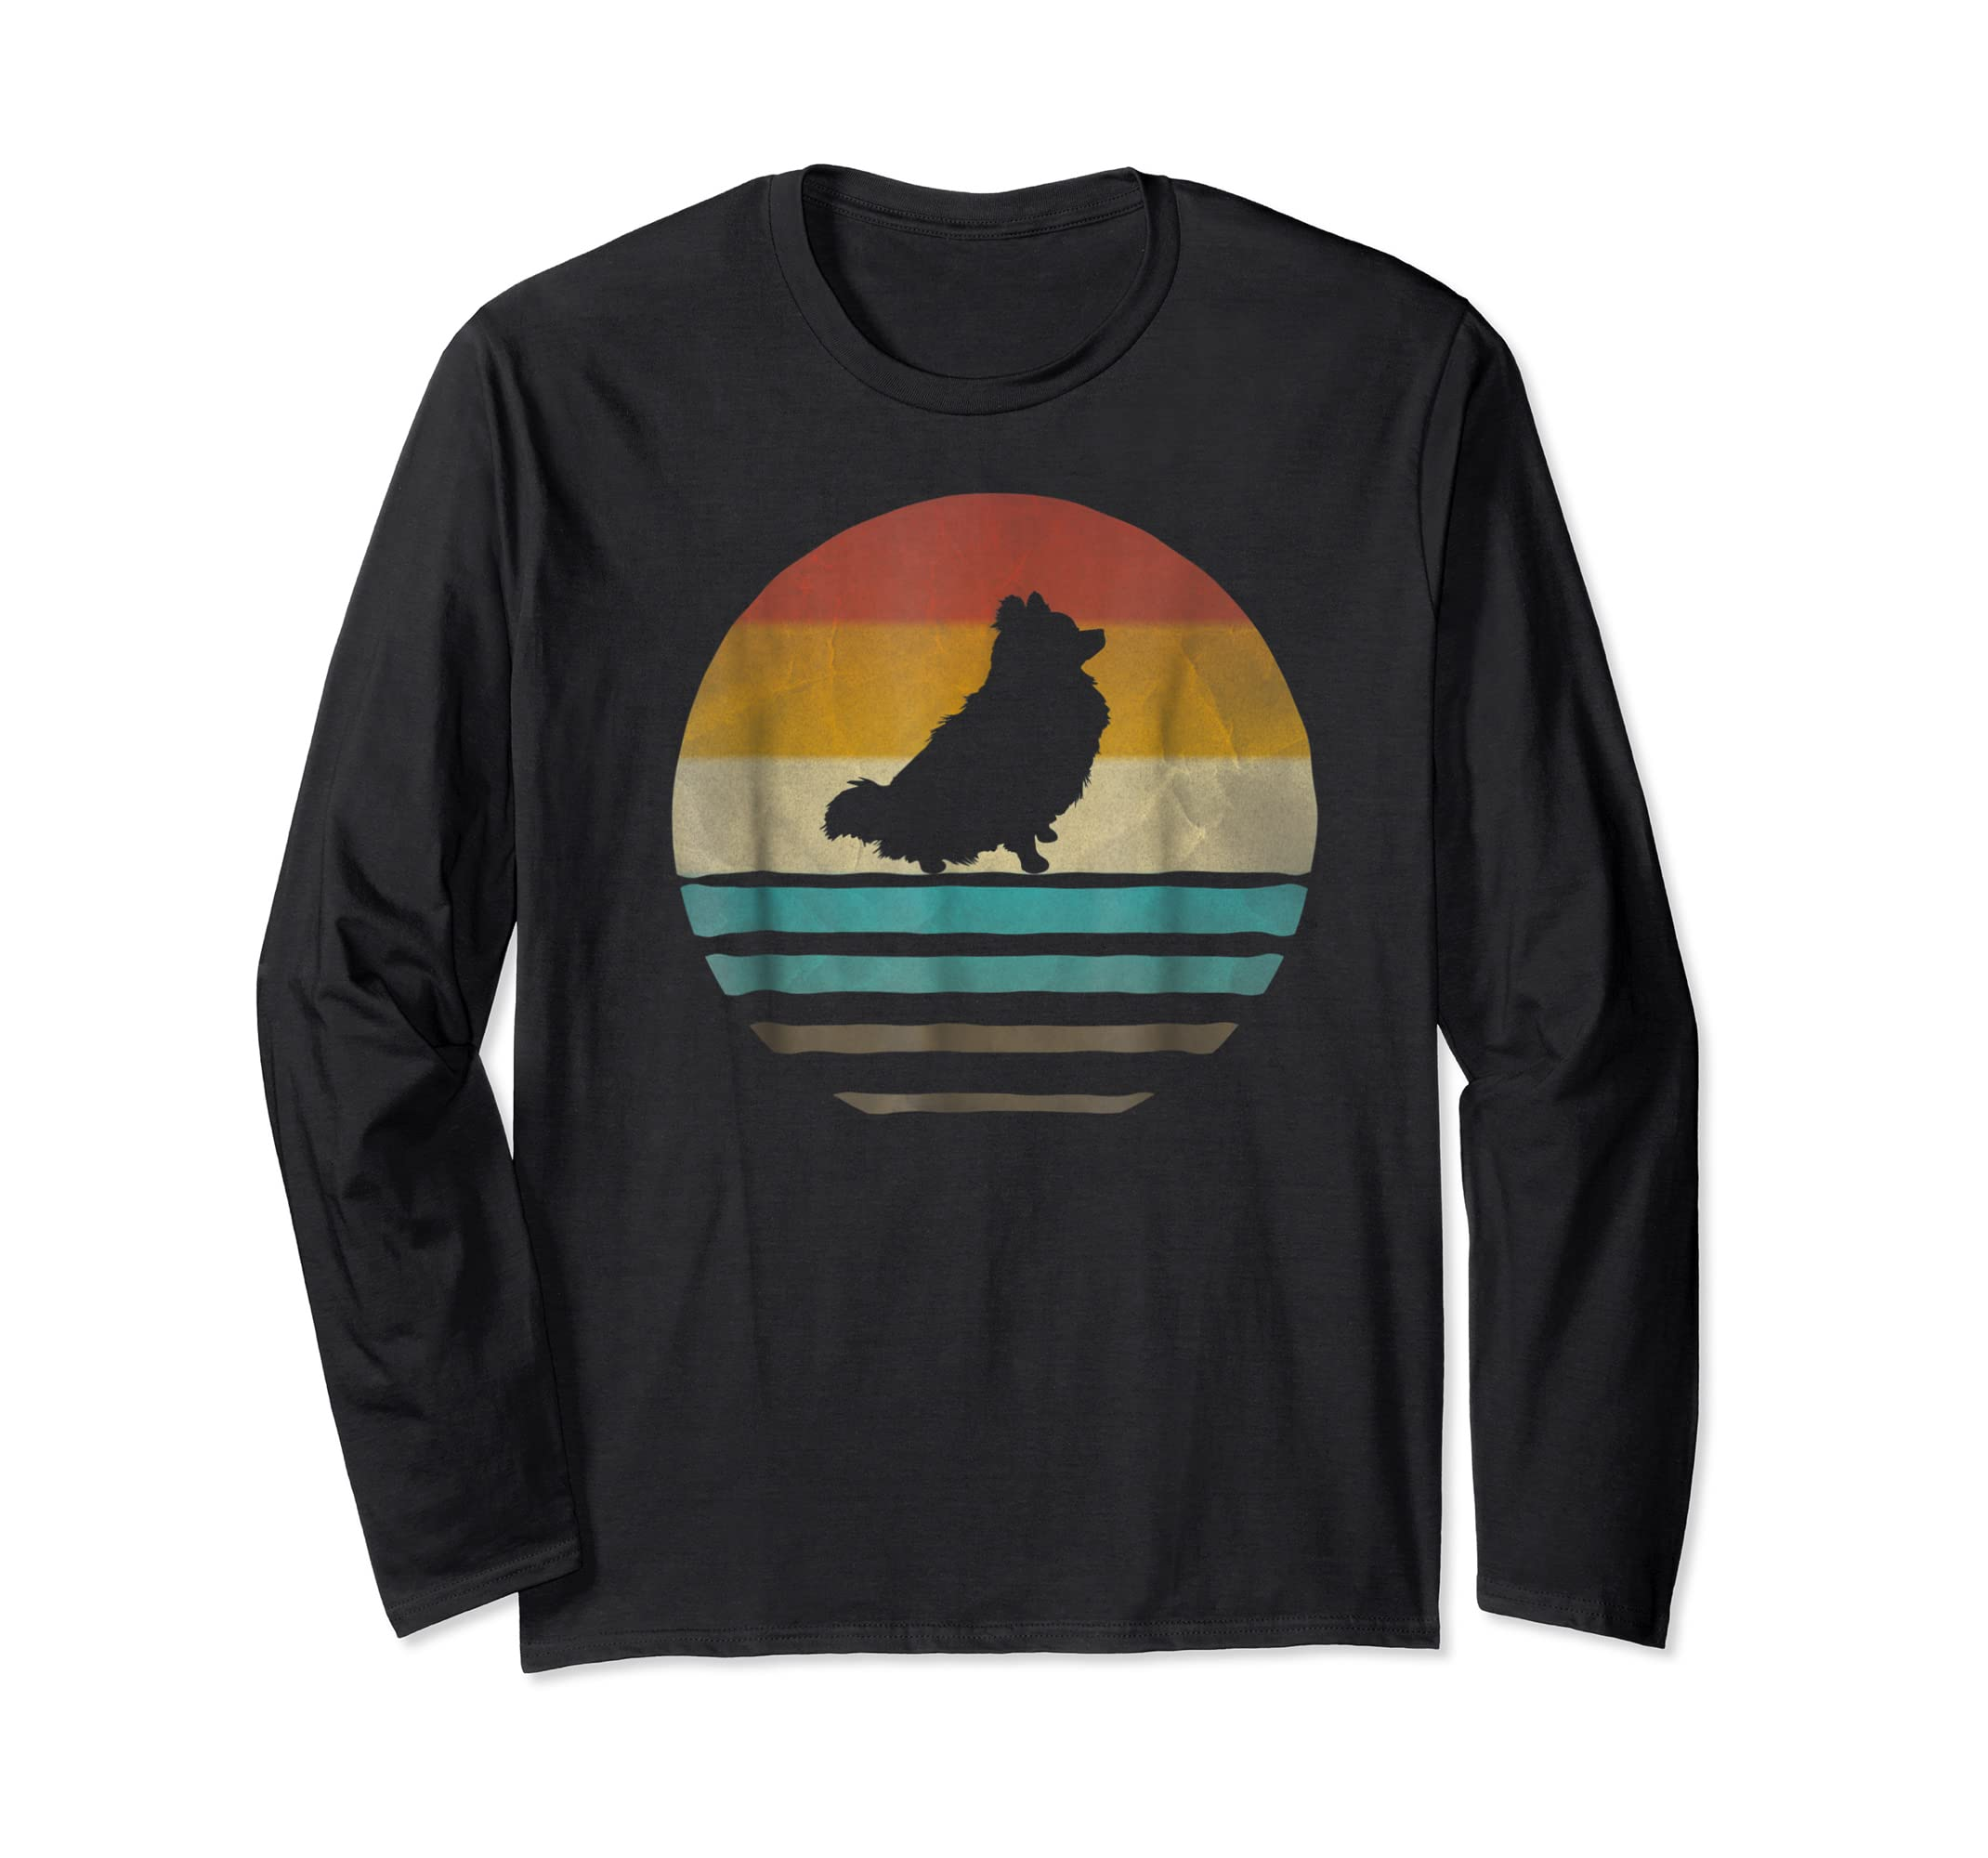 Pomeranian Dog Shirt Retro Vintage 70s Silhouette Distressed-Long Sleeve-Black